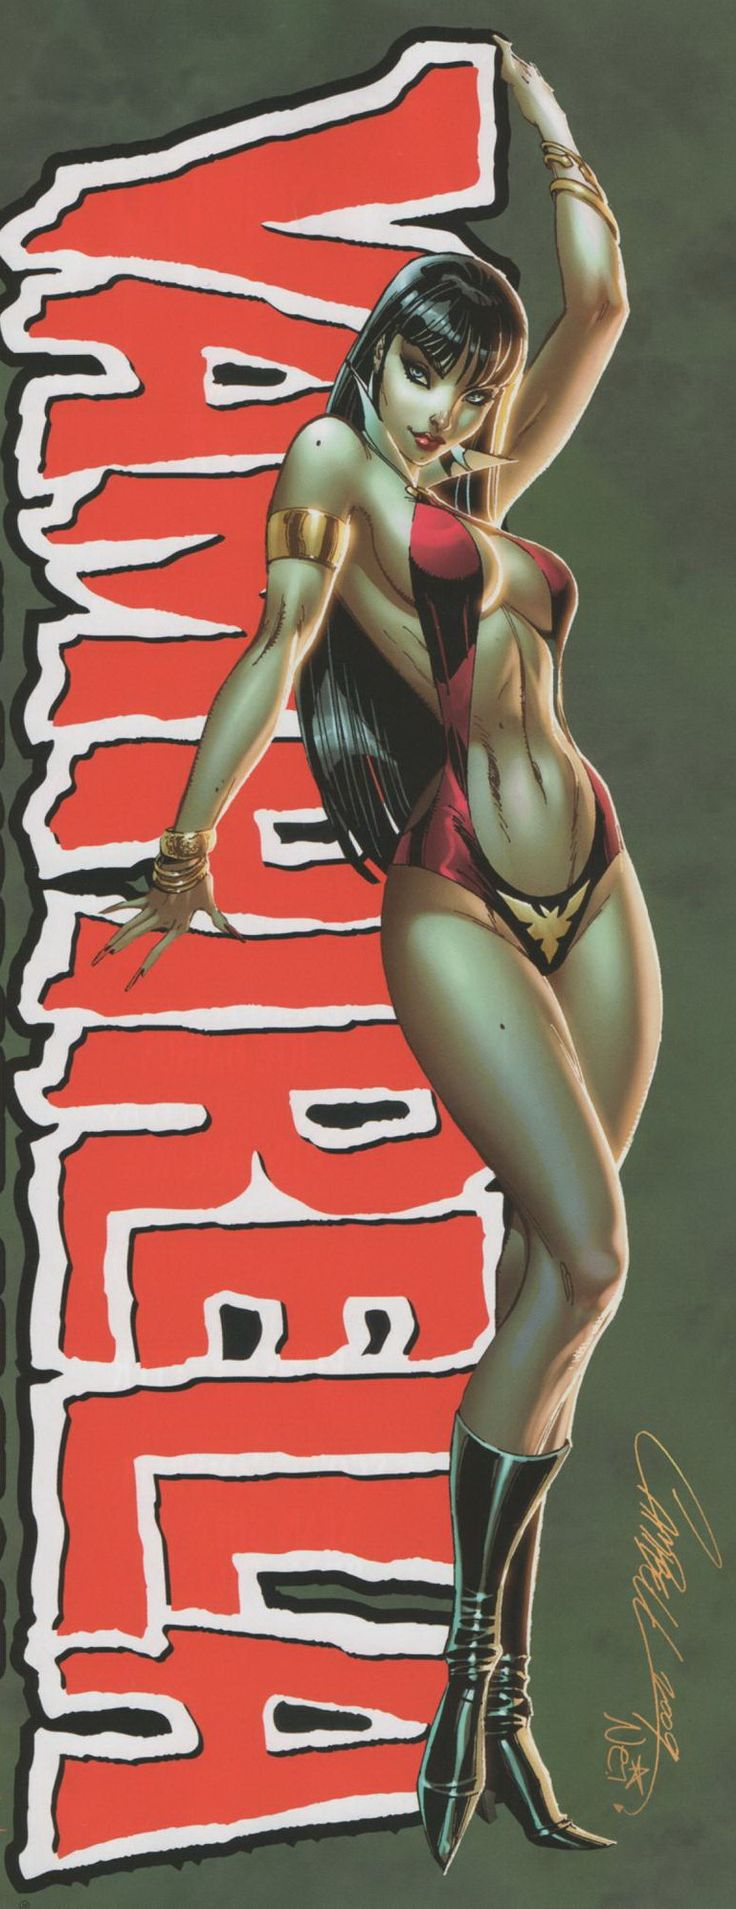 #Vampirella by J. Scott Campbell         For more great pins go to .@KaseyBelleFox